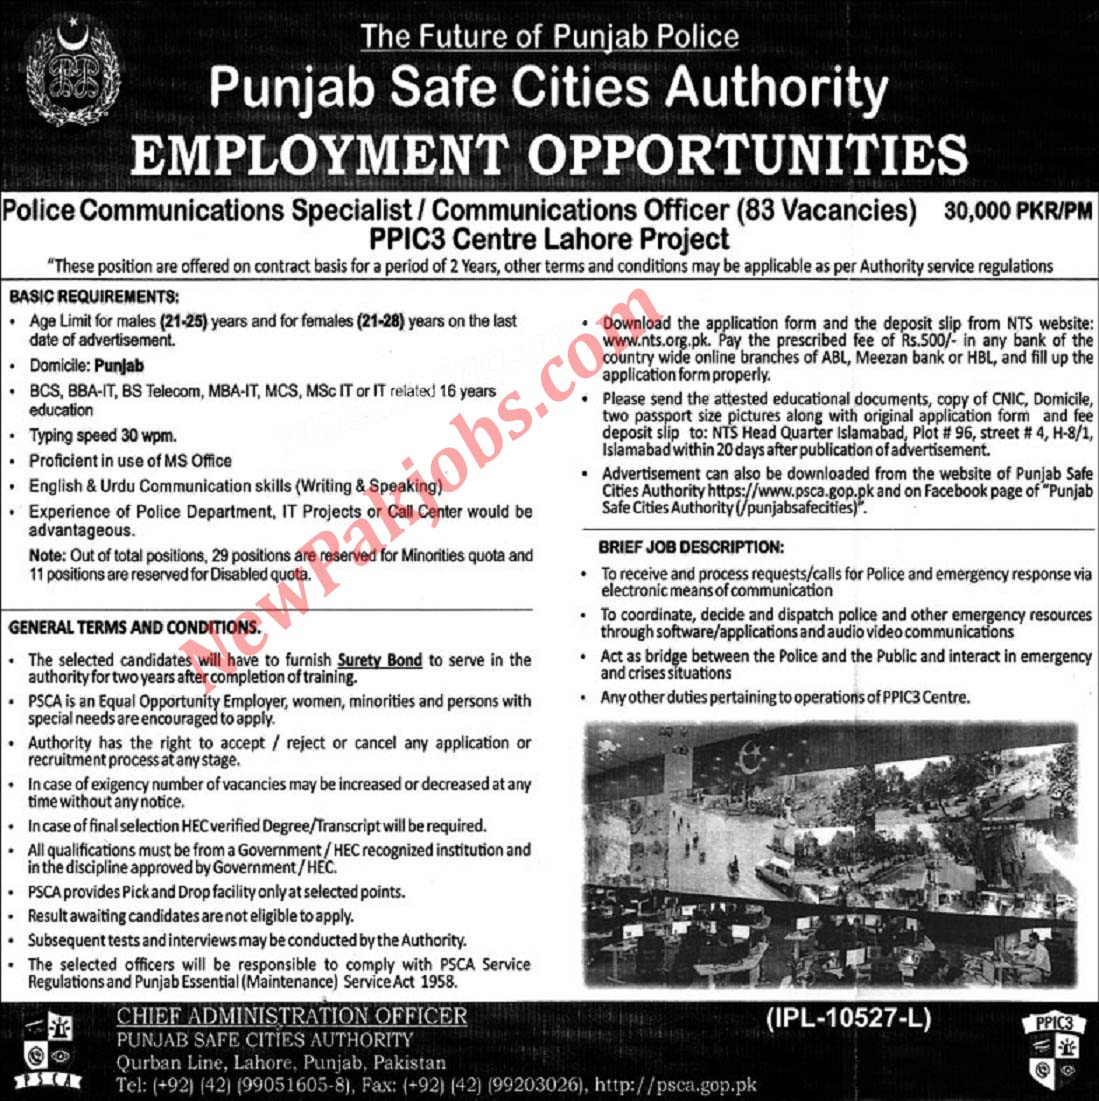 NTS Jobs in Punjab Safe Cities Authority-newpakjobs